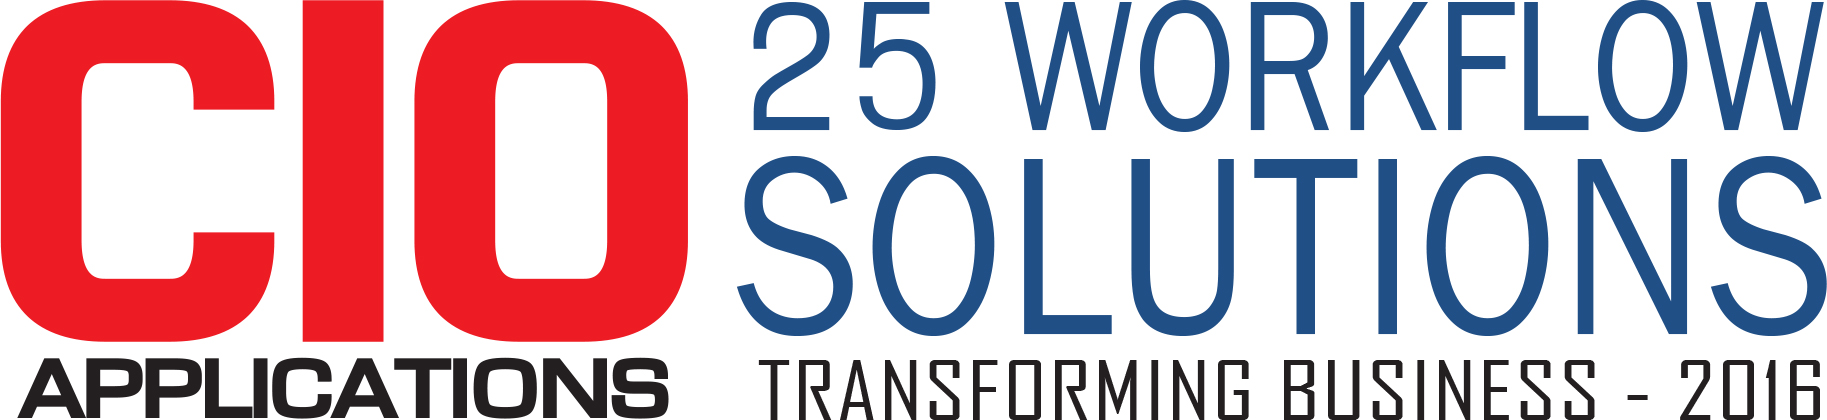 25 WorkFlow Solutions Companies Transforming Business - 2016